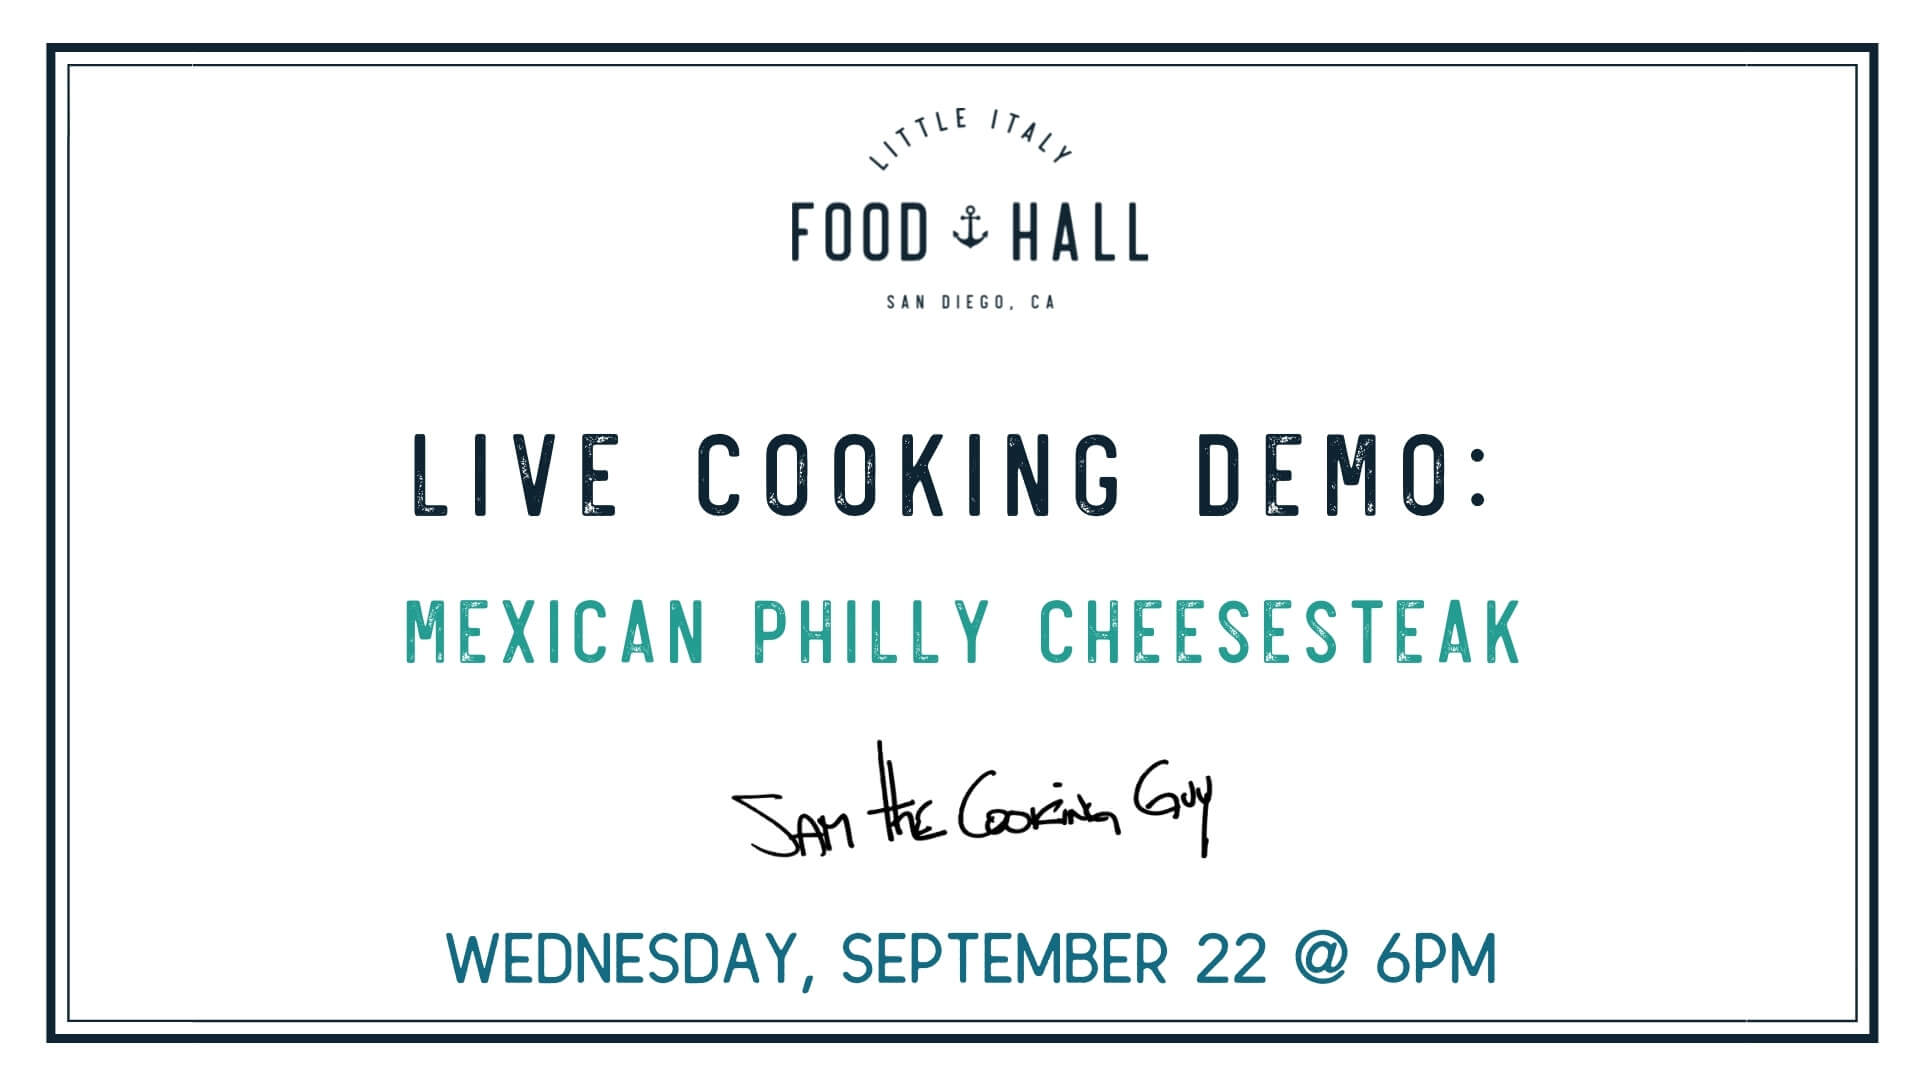 Live Demo Mexican Philly Cheesesteak